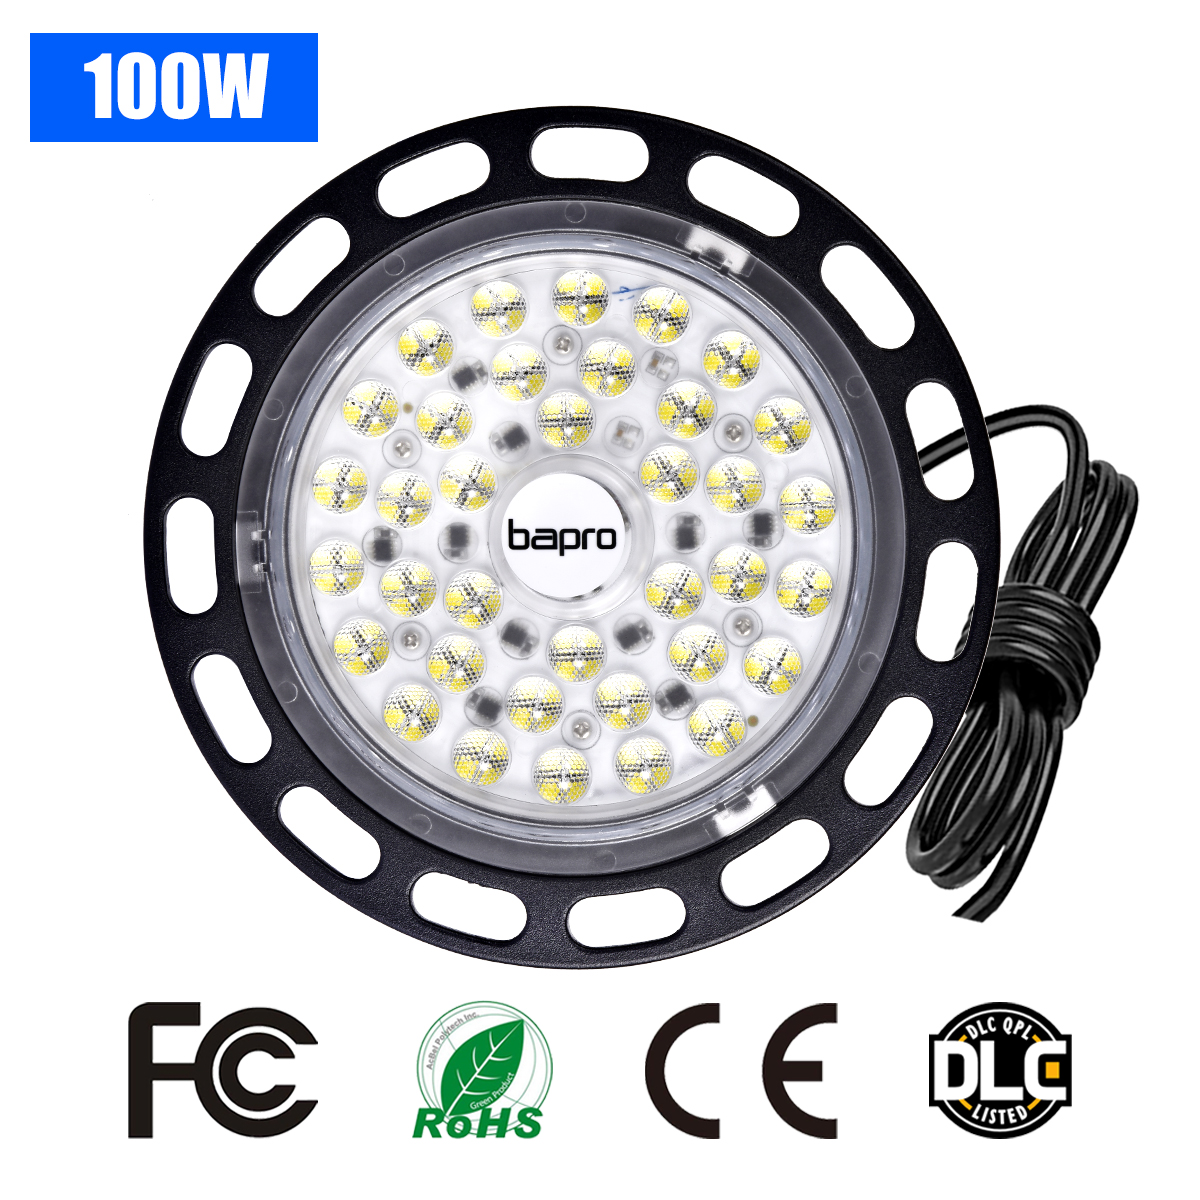 Lighting Industrial 100W UFO LED High Bay Lights 220V Waterproof IP44 Commercial Lighting Industrial Warehouse Led High Bay Lamp